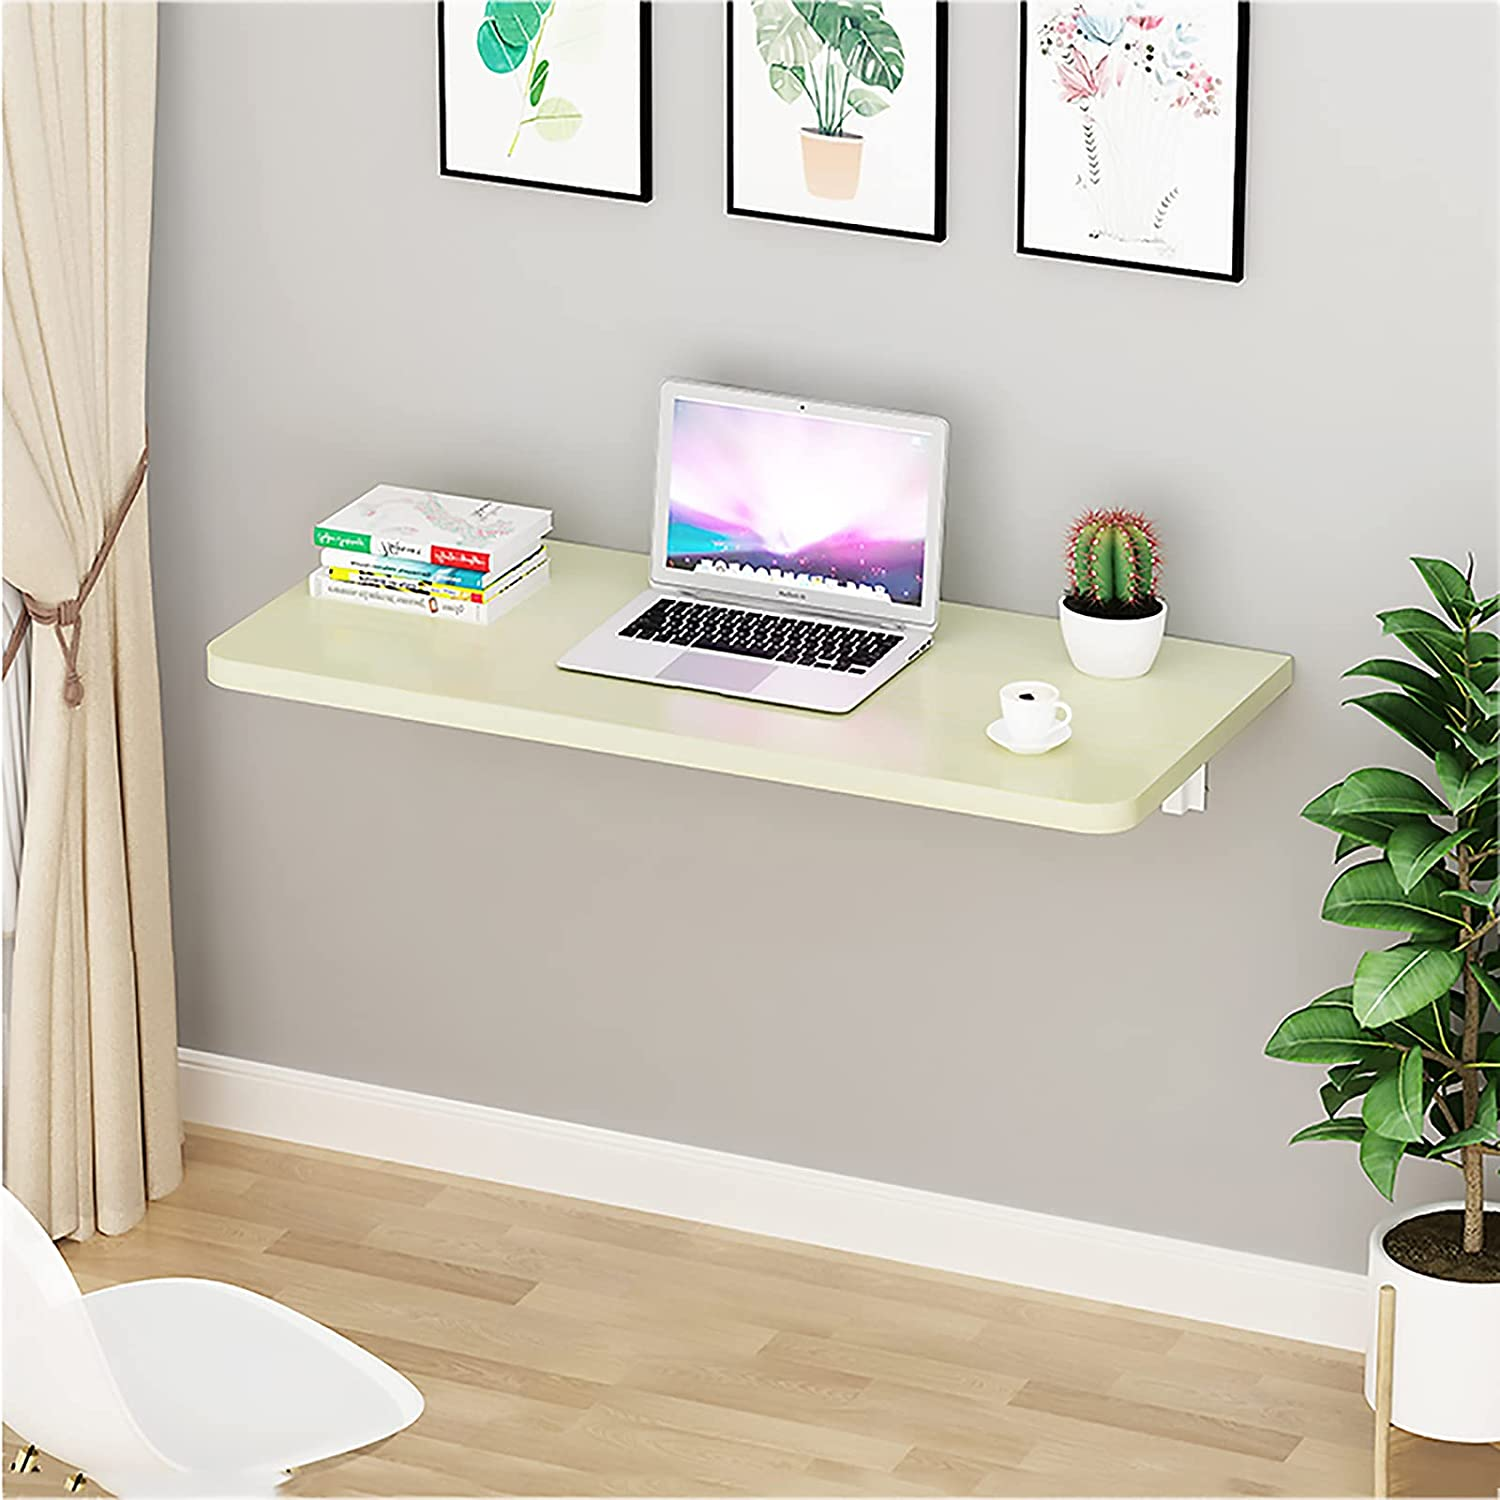 YLSS Wall Under blast sales Mounted Folding San Diego Mall Desk Table Floating